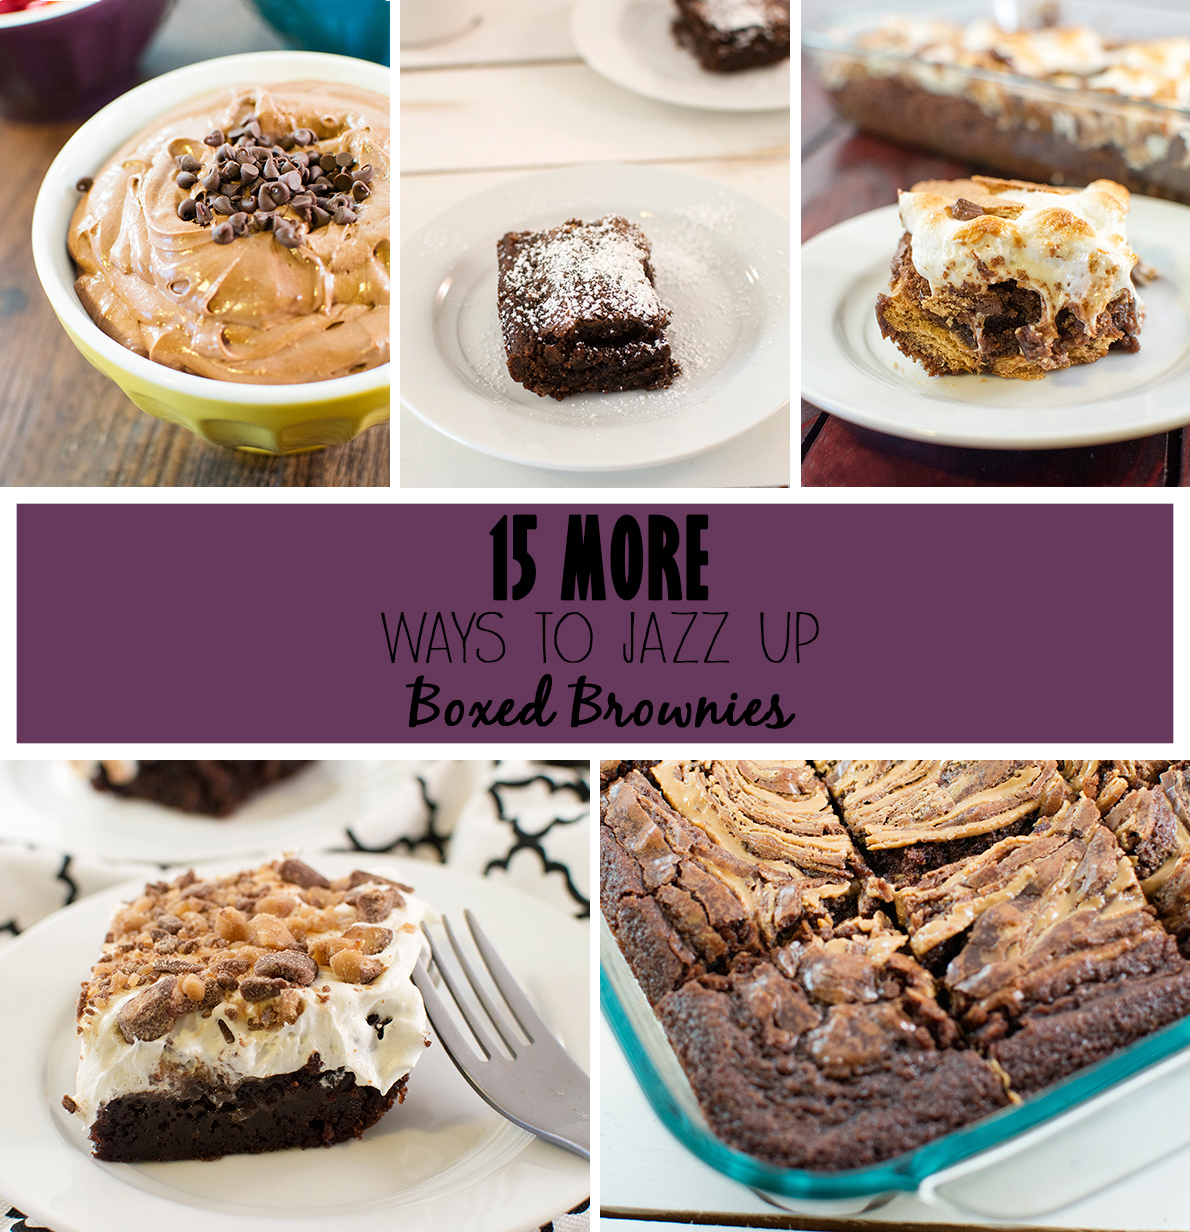 15 more ways to jazz up boxed brownies - Fifteen great tips, tricks, recipes and ideas to take your favorite boxed brownie mix to the next level for a delicious dessert you and everyone will love!